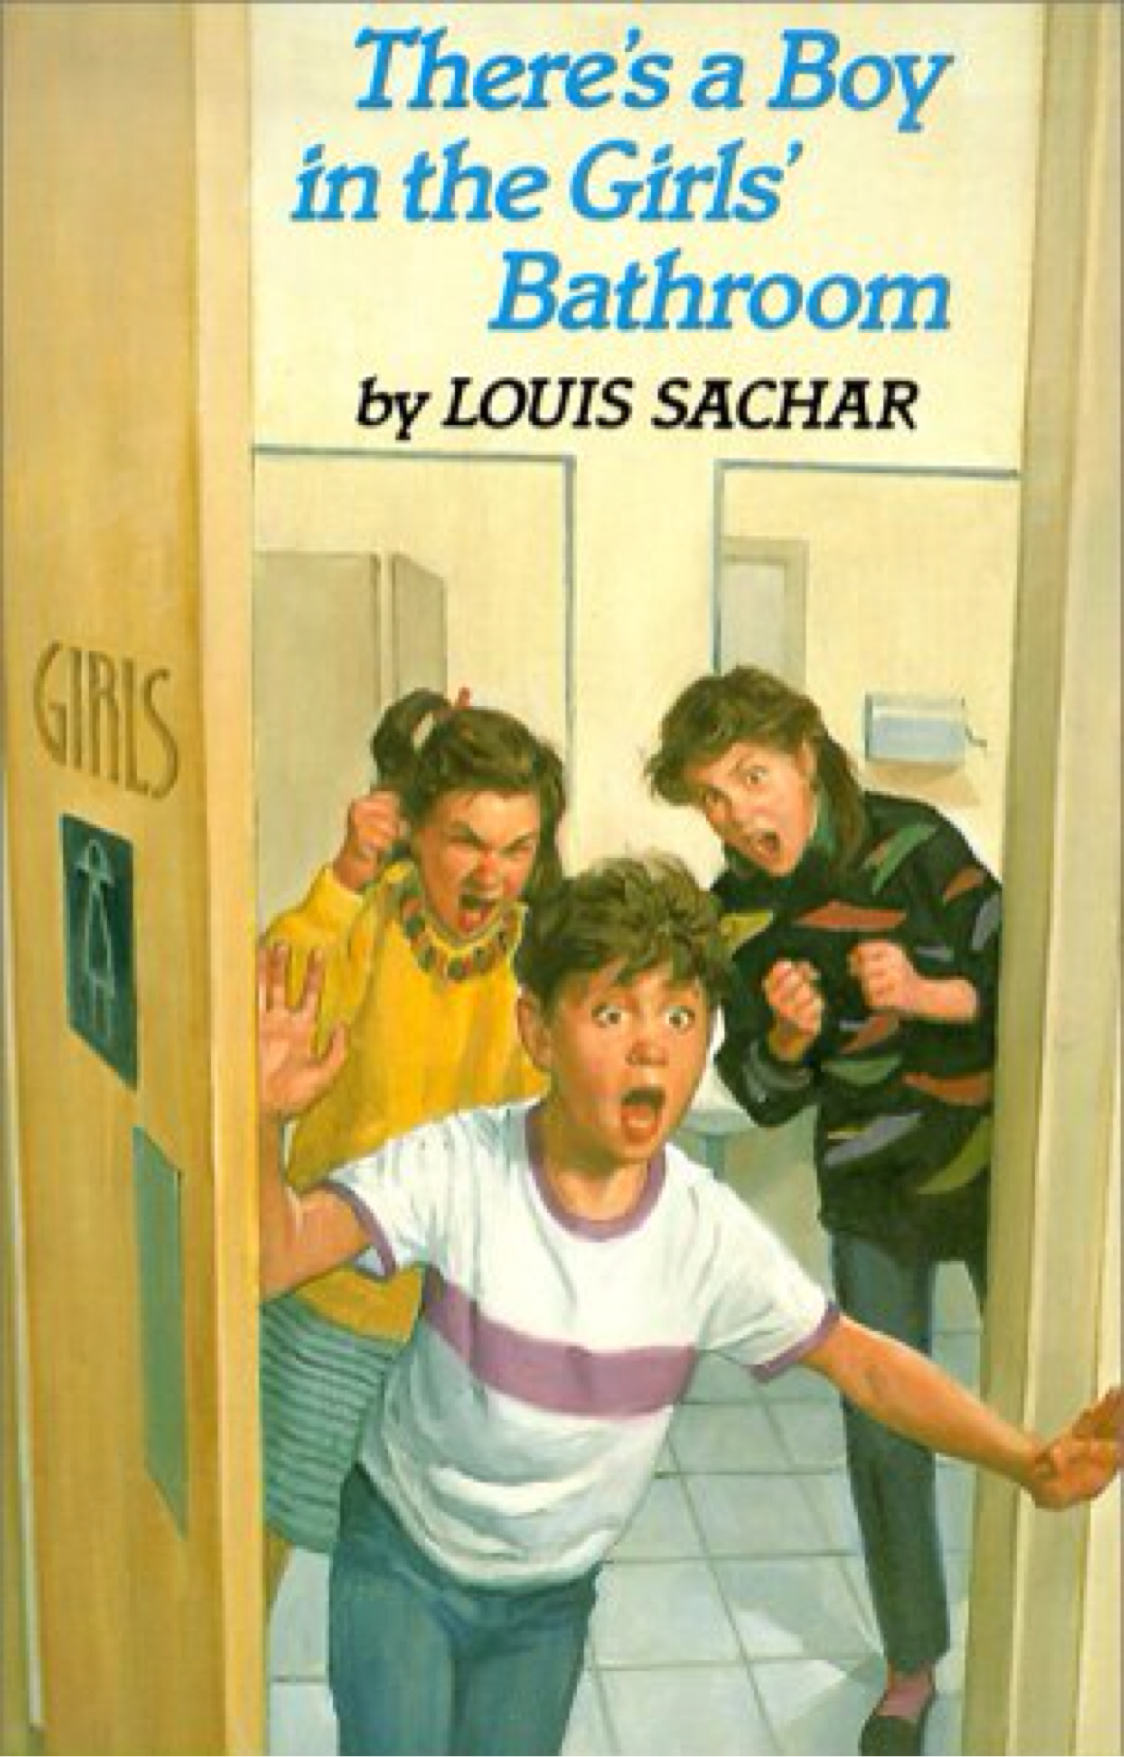 the boy in the girls bathroom - thedancingparent